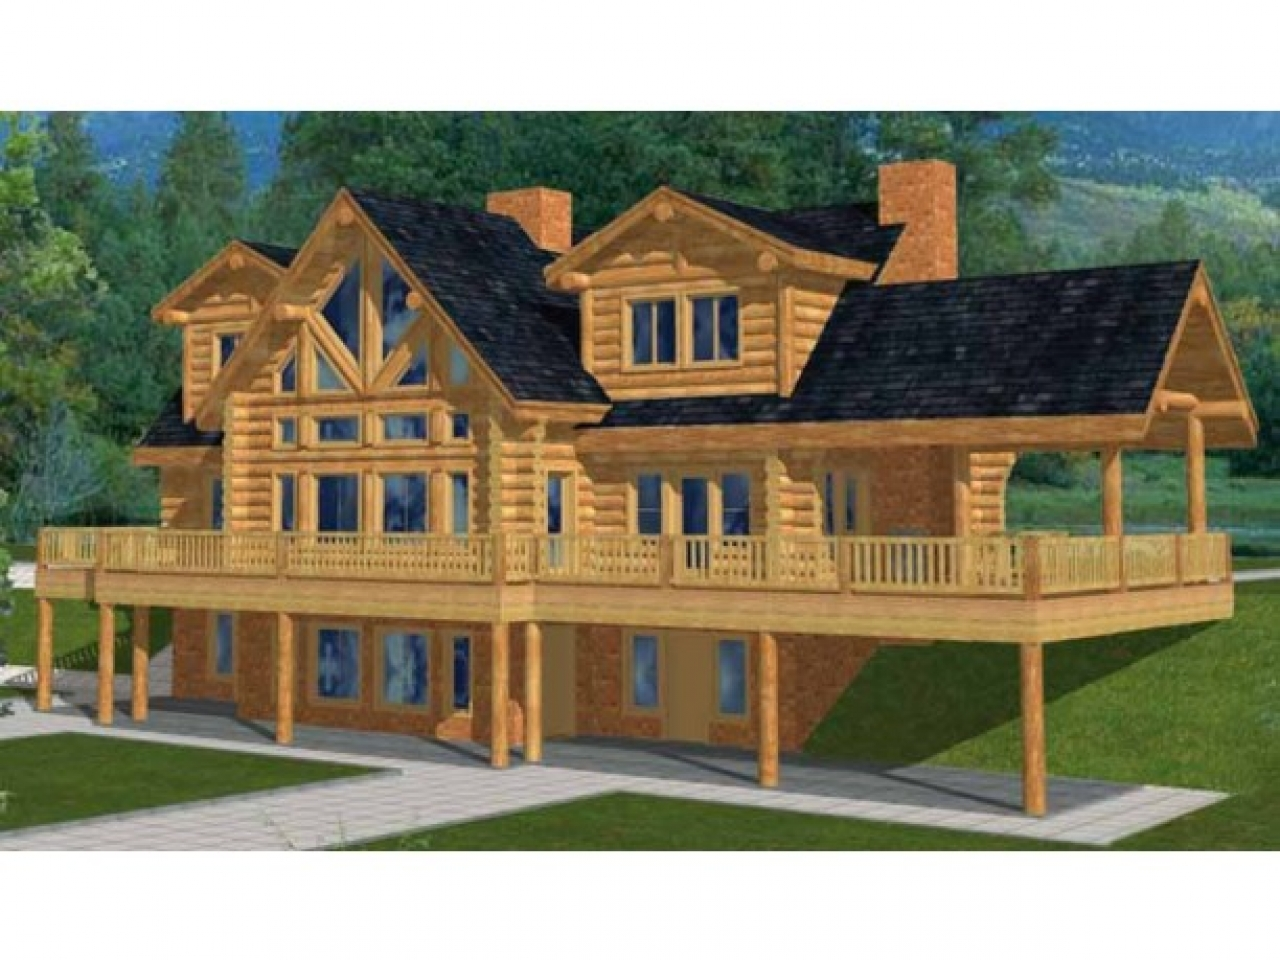 Two story log cabin house plans inexpensive modular homes for One story log house plans